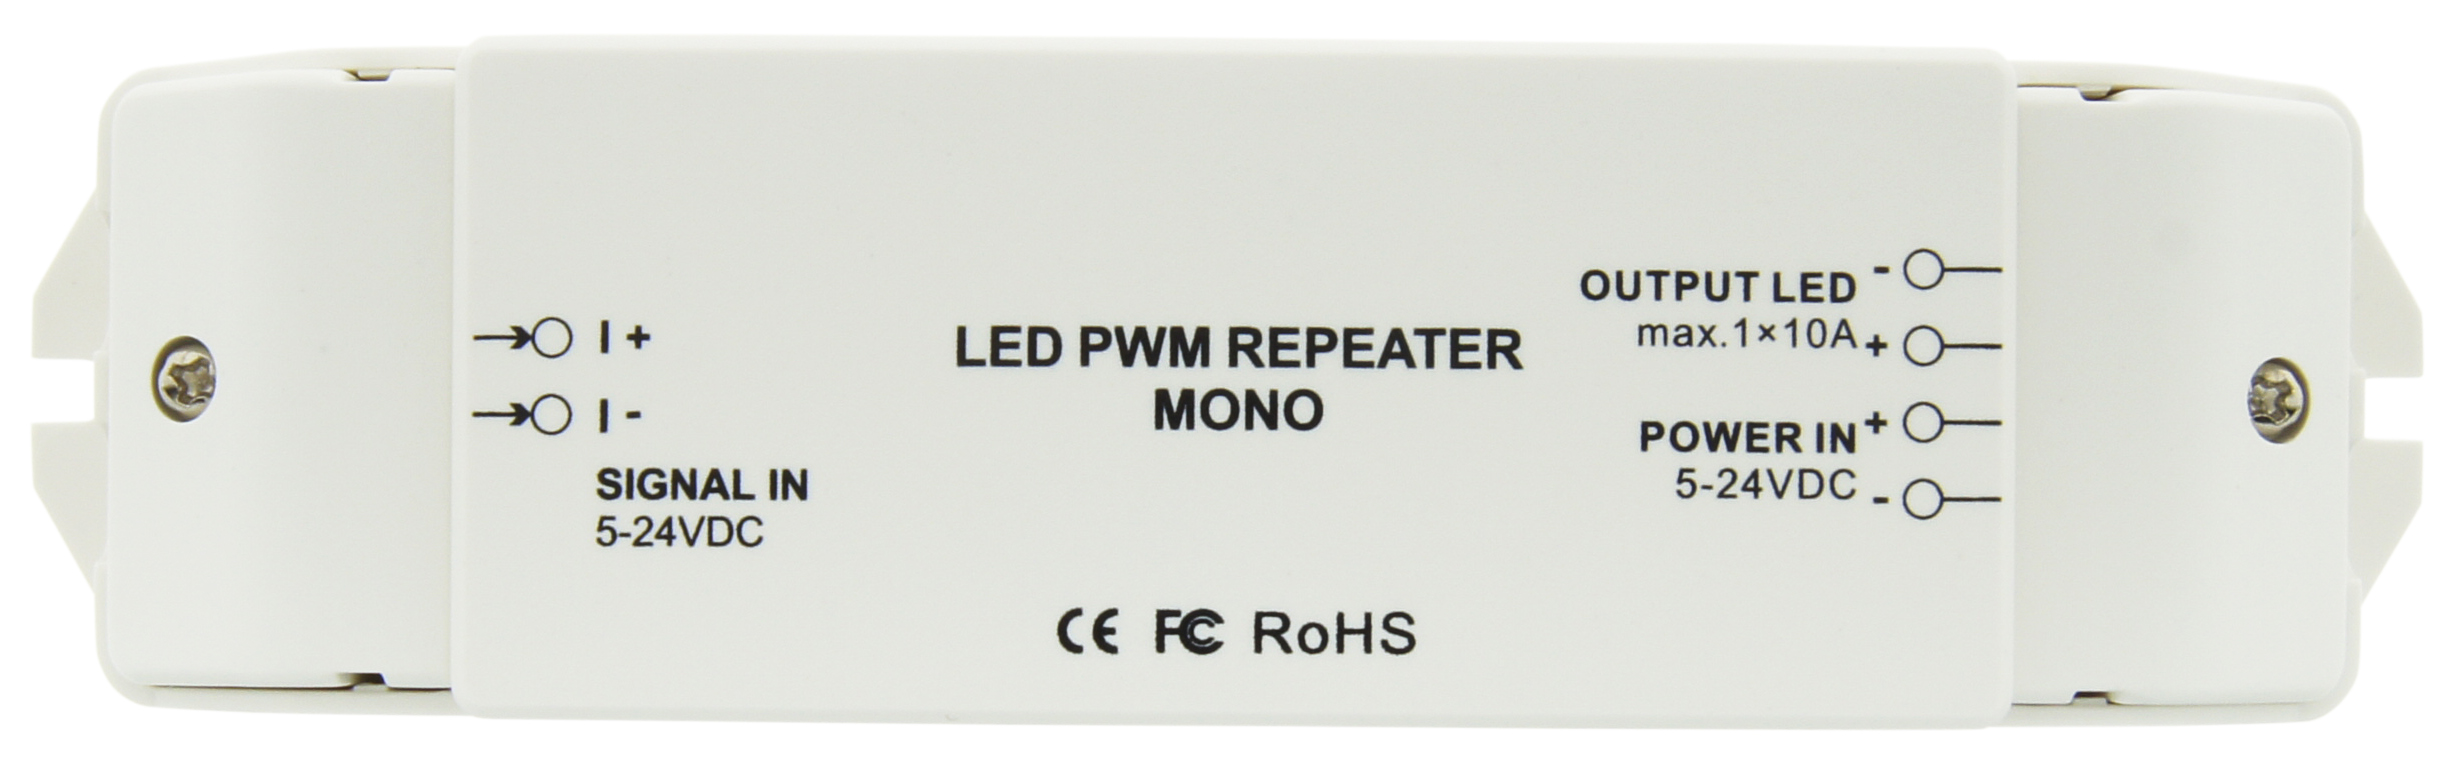 1 Stk LED PWM Repeater Mono LILC018001